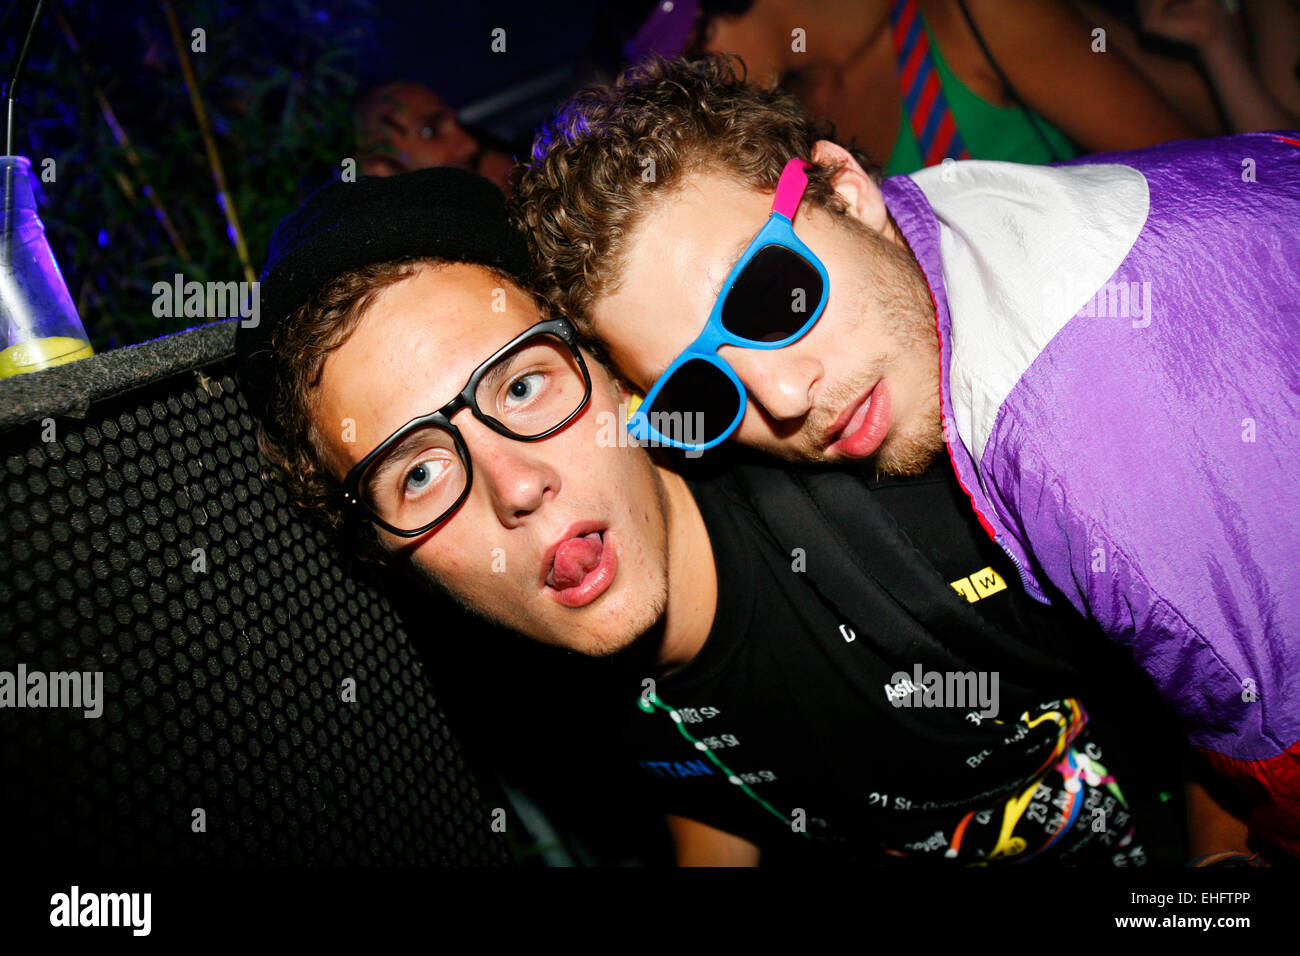 Two mates in sunglasses at TDK Cross Central Festival 2007 at Canvas in Kings Cross in London. - Stock Image